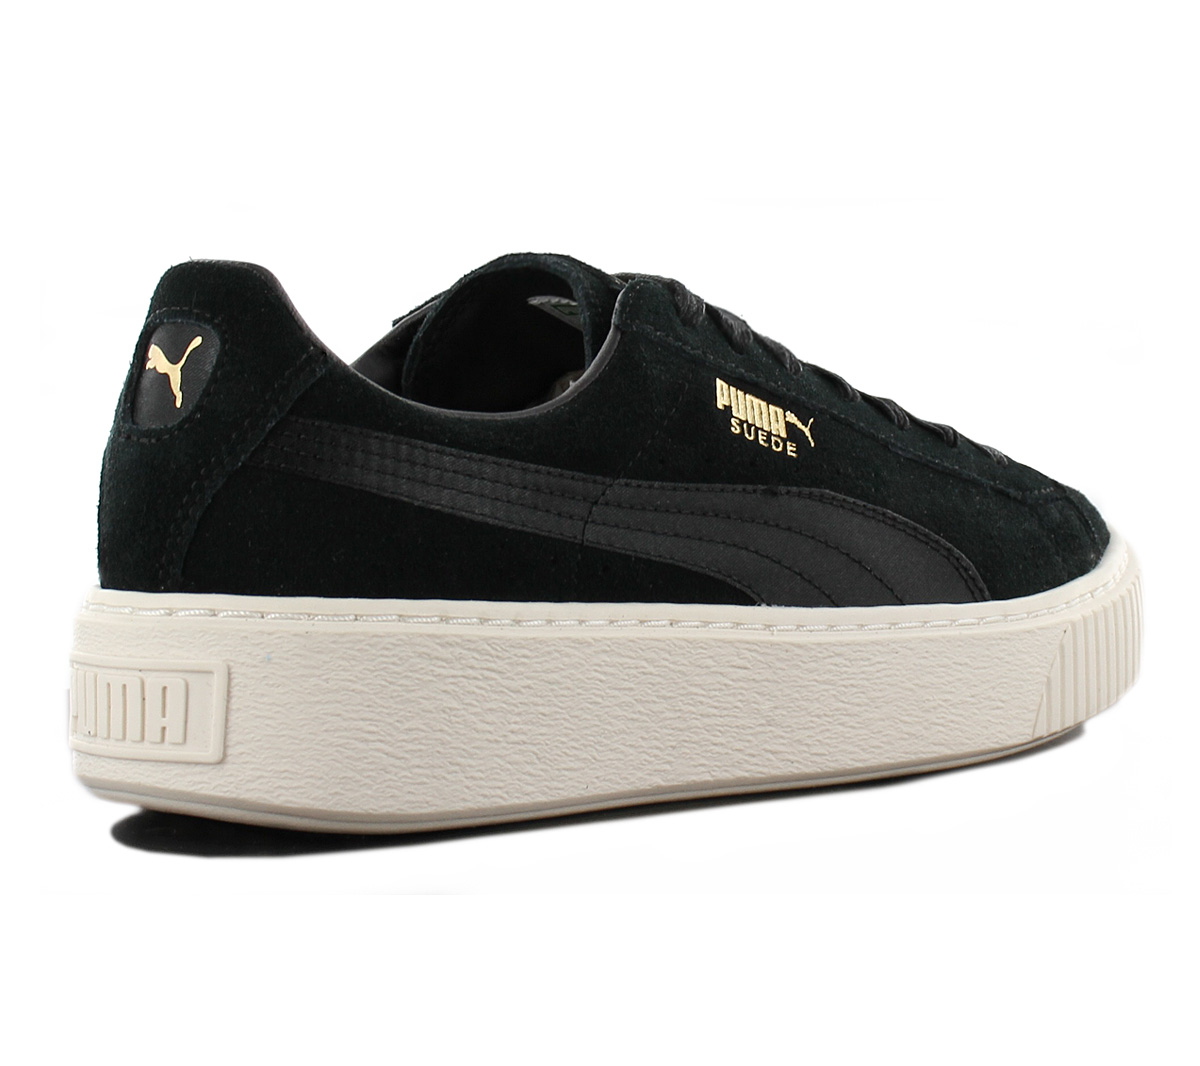 Puma Suede Platform Mono Satin Ladies Shoes Leather Sneakers 365828 ... bcabf53589